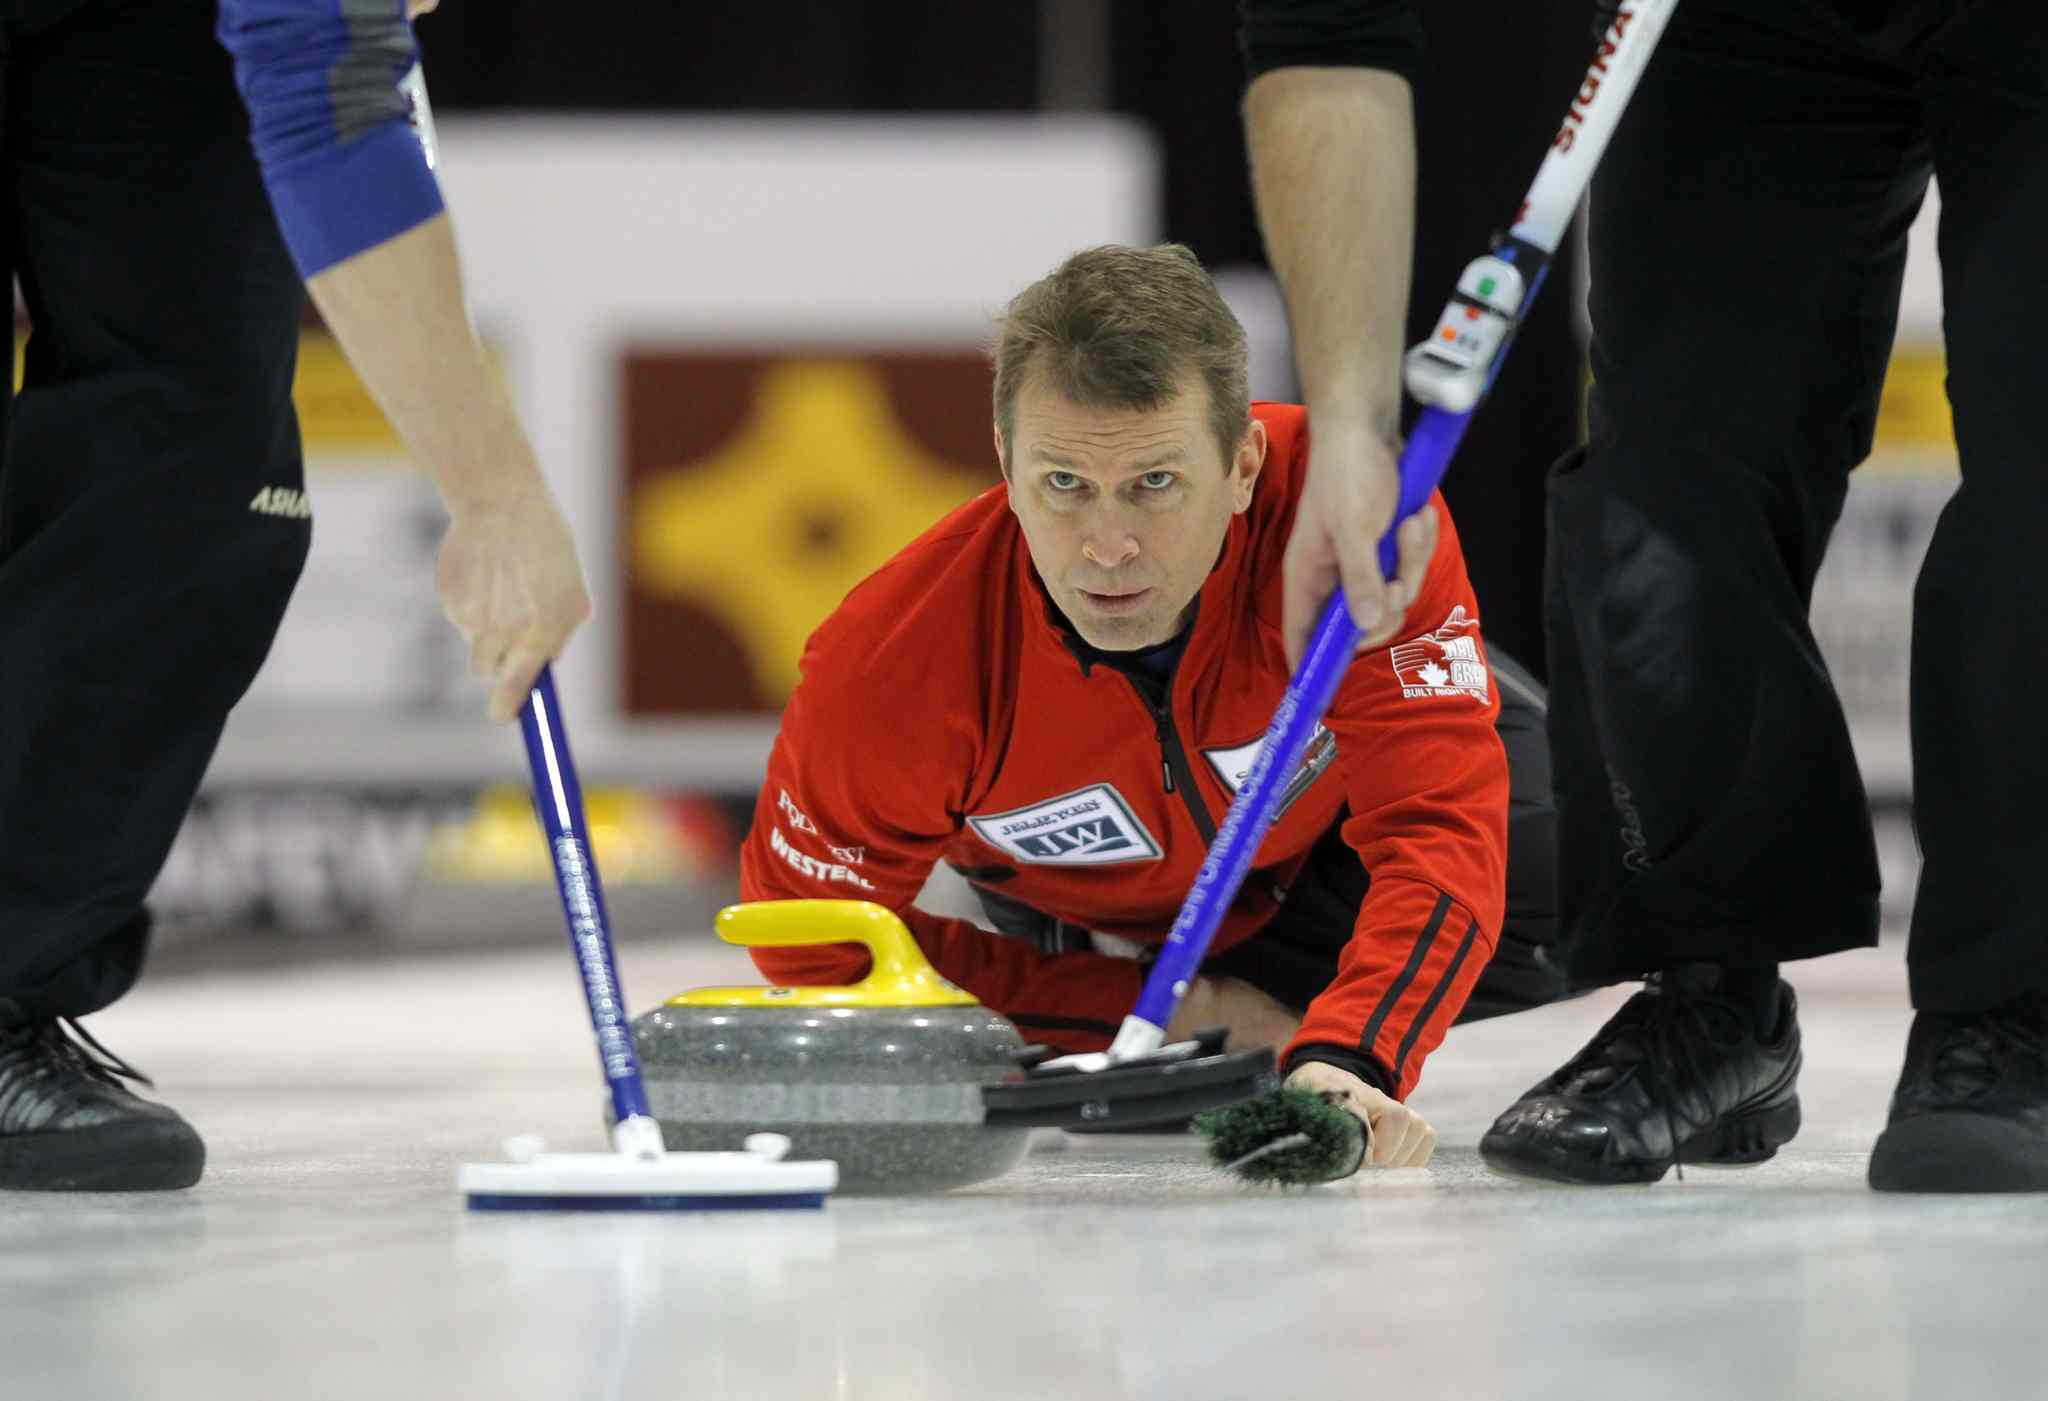 Defending champion Jeff Stoughton of Charleswood club claimed another victory Wednesday during the Safeway curling championship at MTS Iceplex.